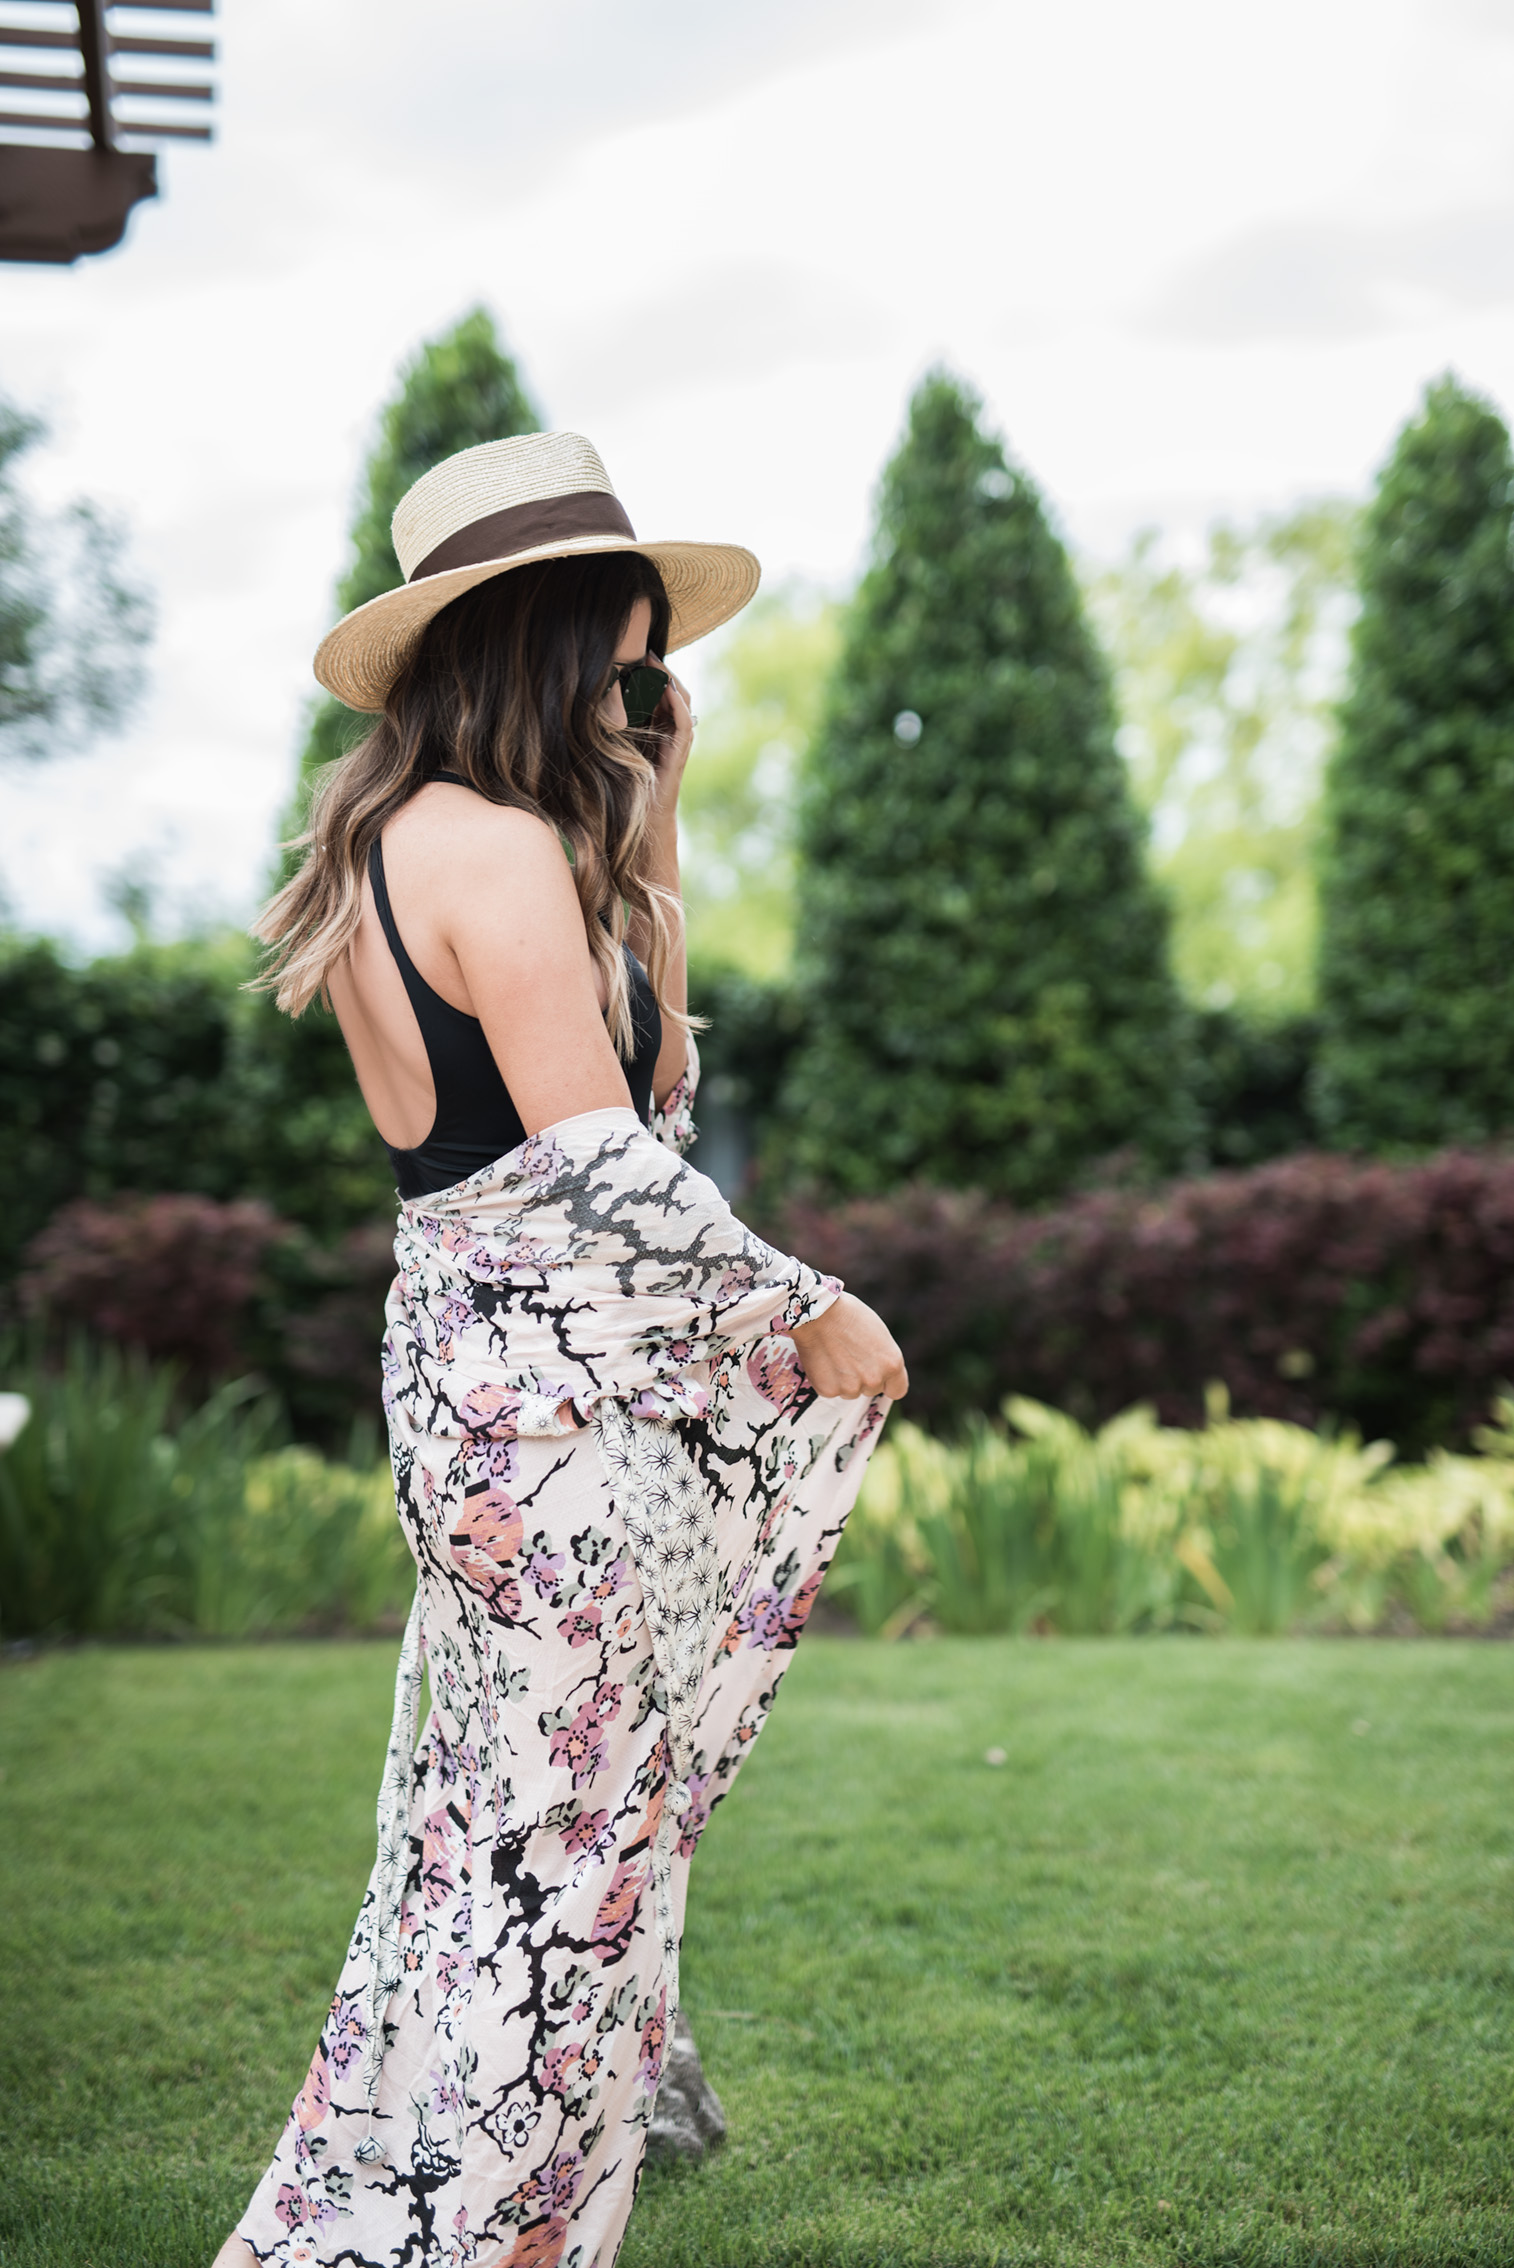 Tiffany Jais Houston fashion and lifestyle blogger   Black one piece swimsuit, floral cover up, pool outfit ides, free people,